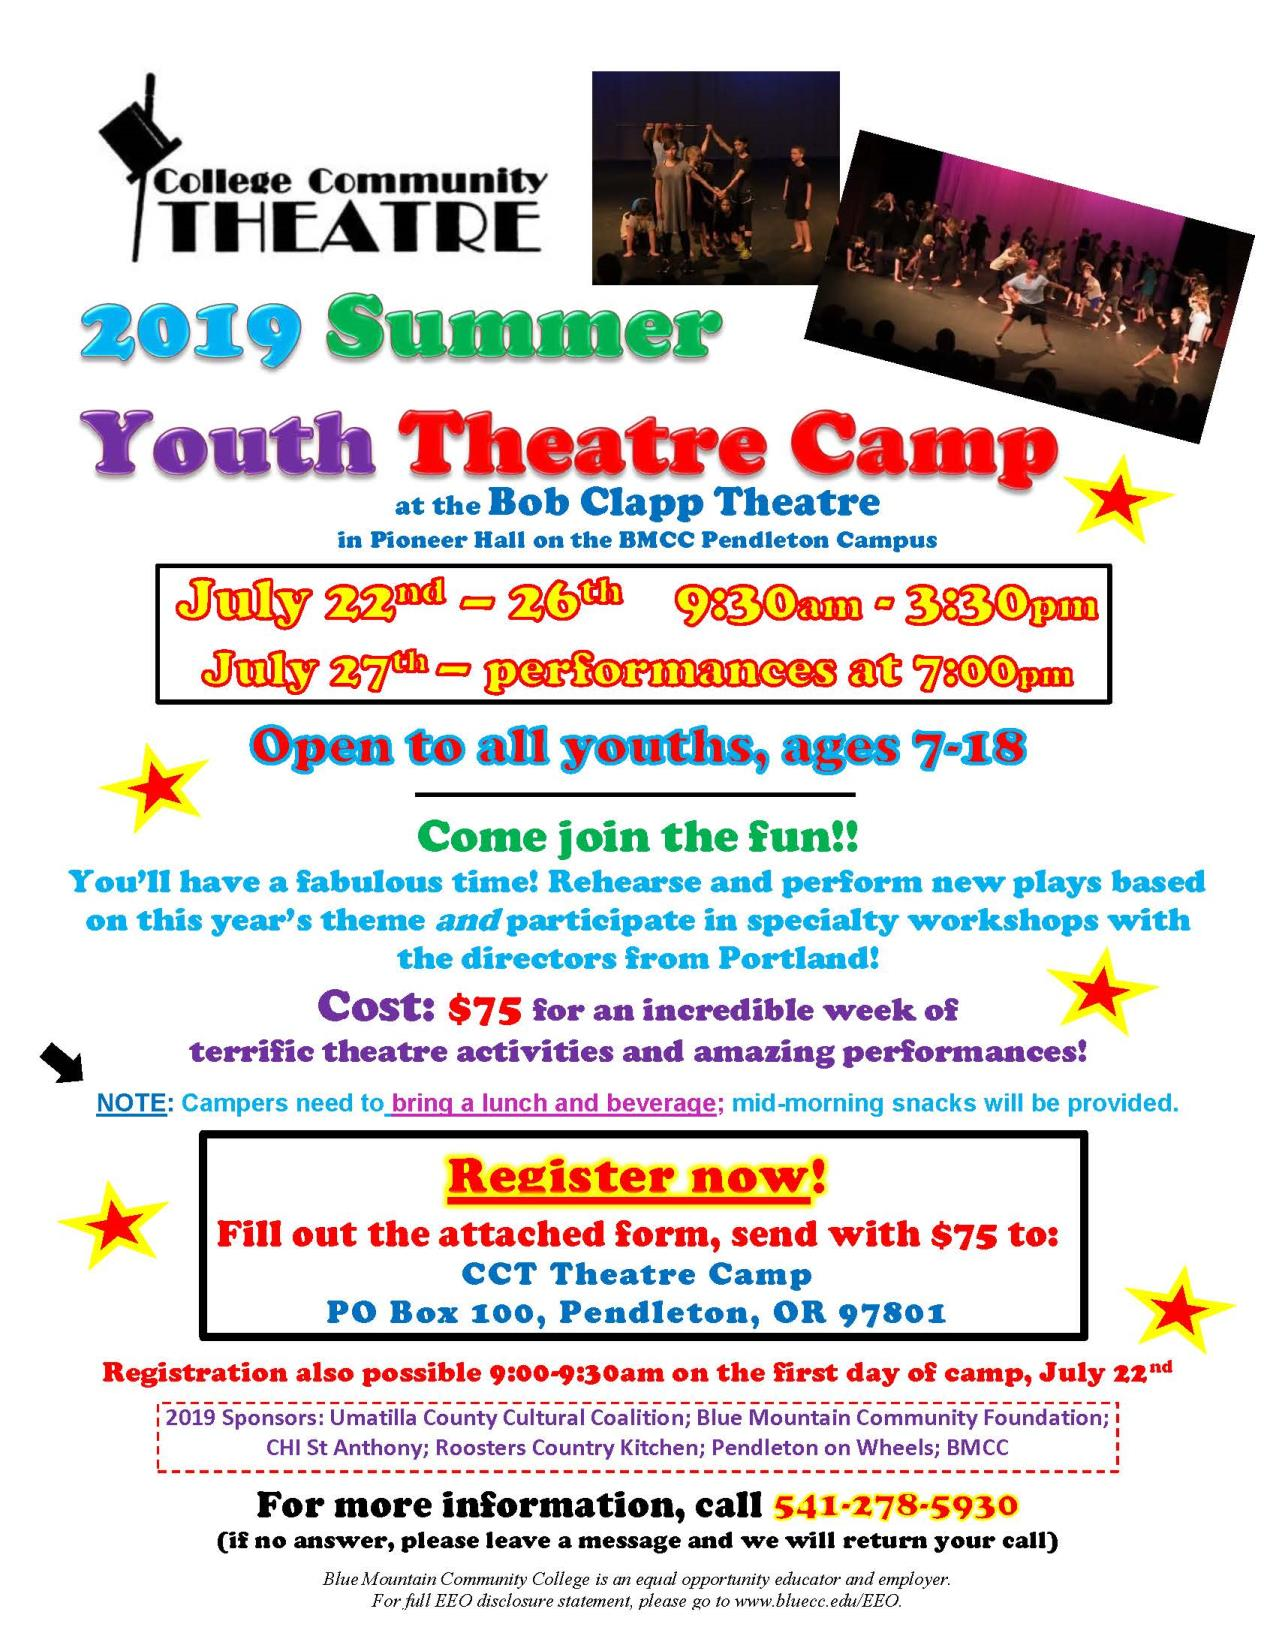 Theatre Camp Flyer 2019